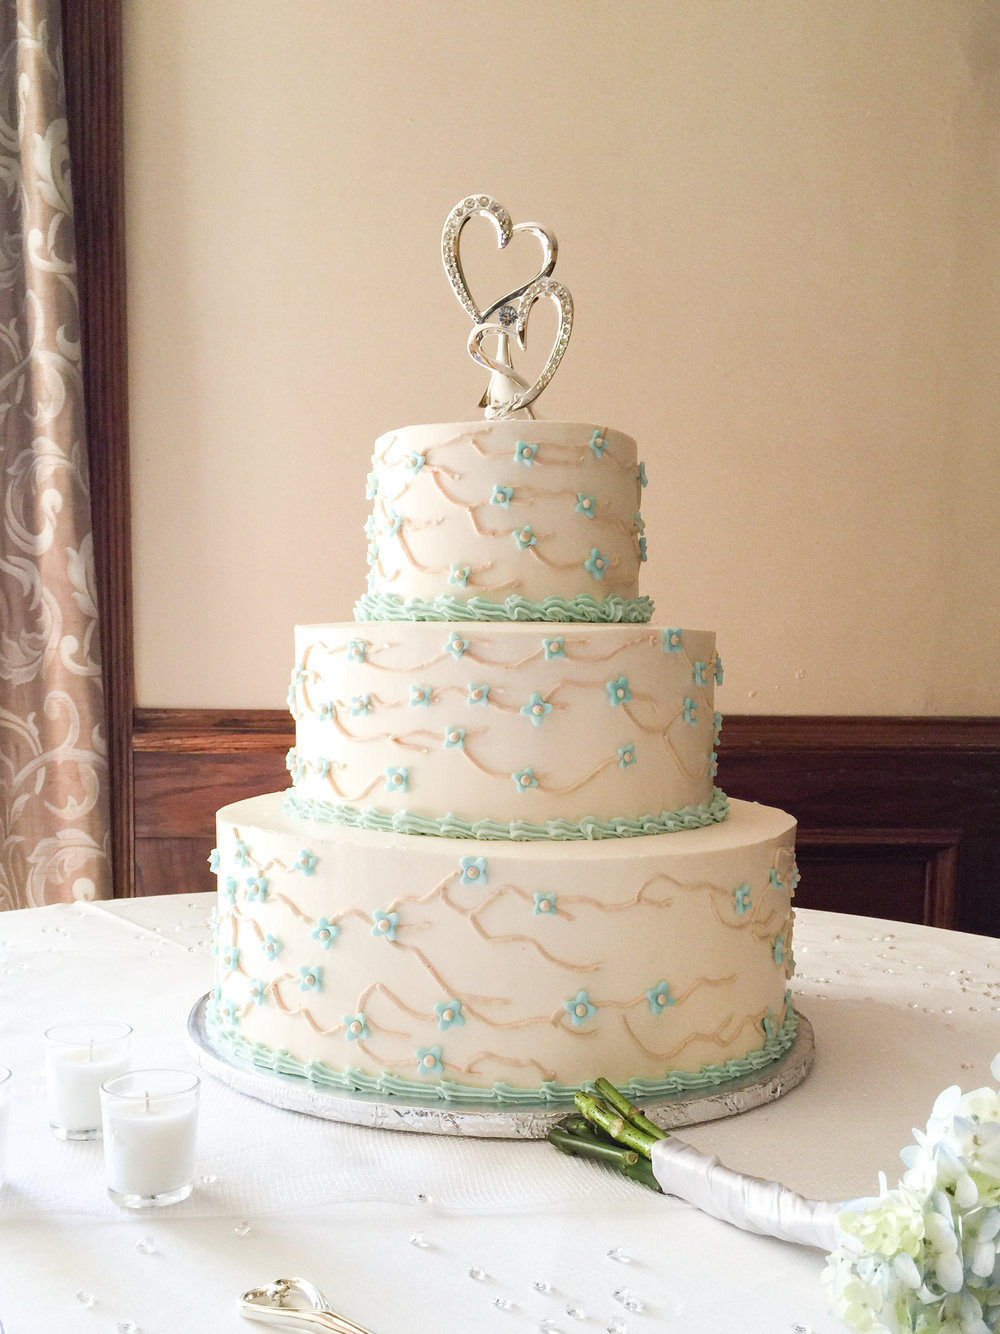 wedding-cakes-ventura-ca-marie-shannon-confections-specialty-pastries-2.jpg